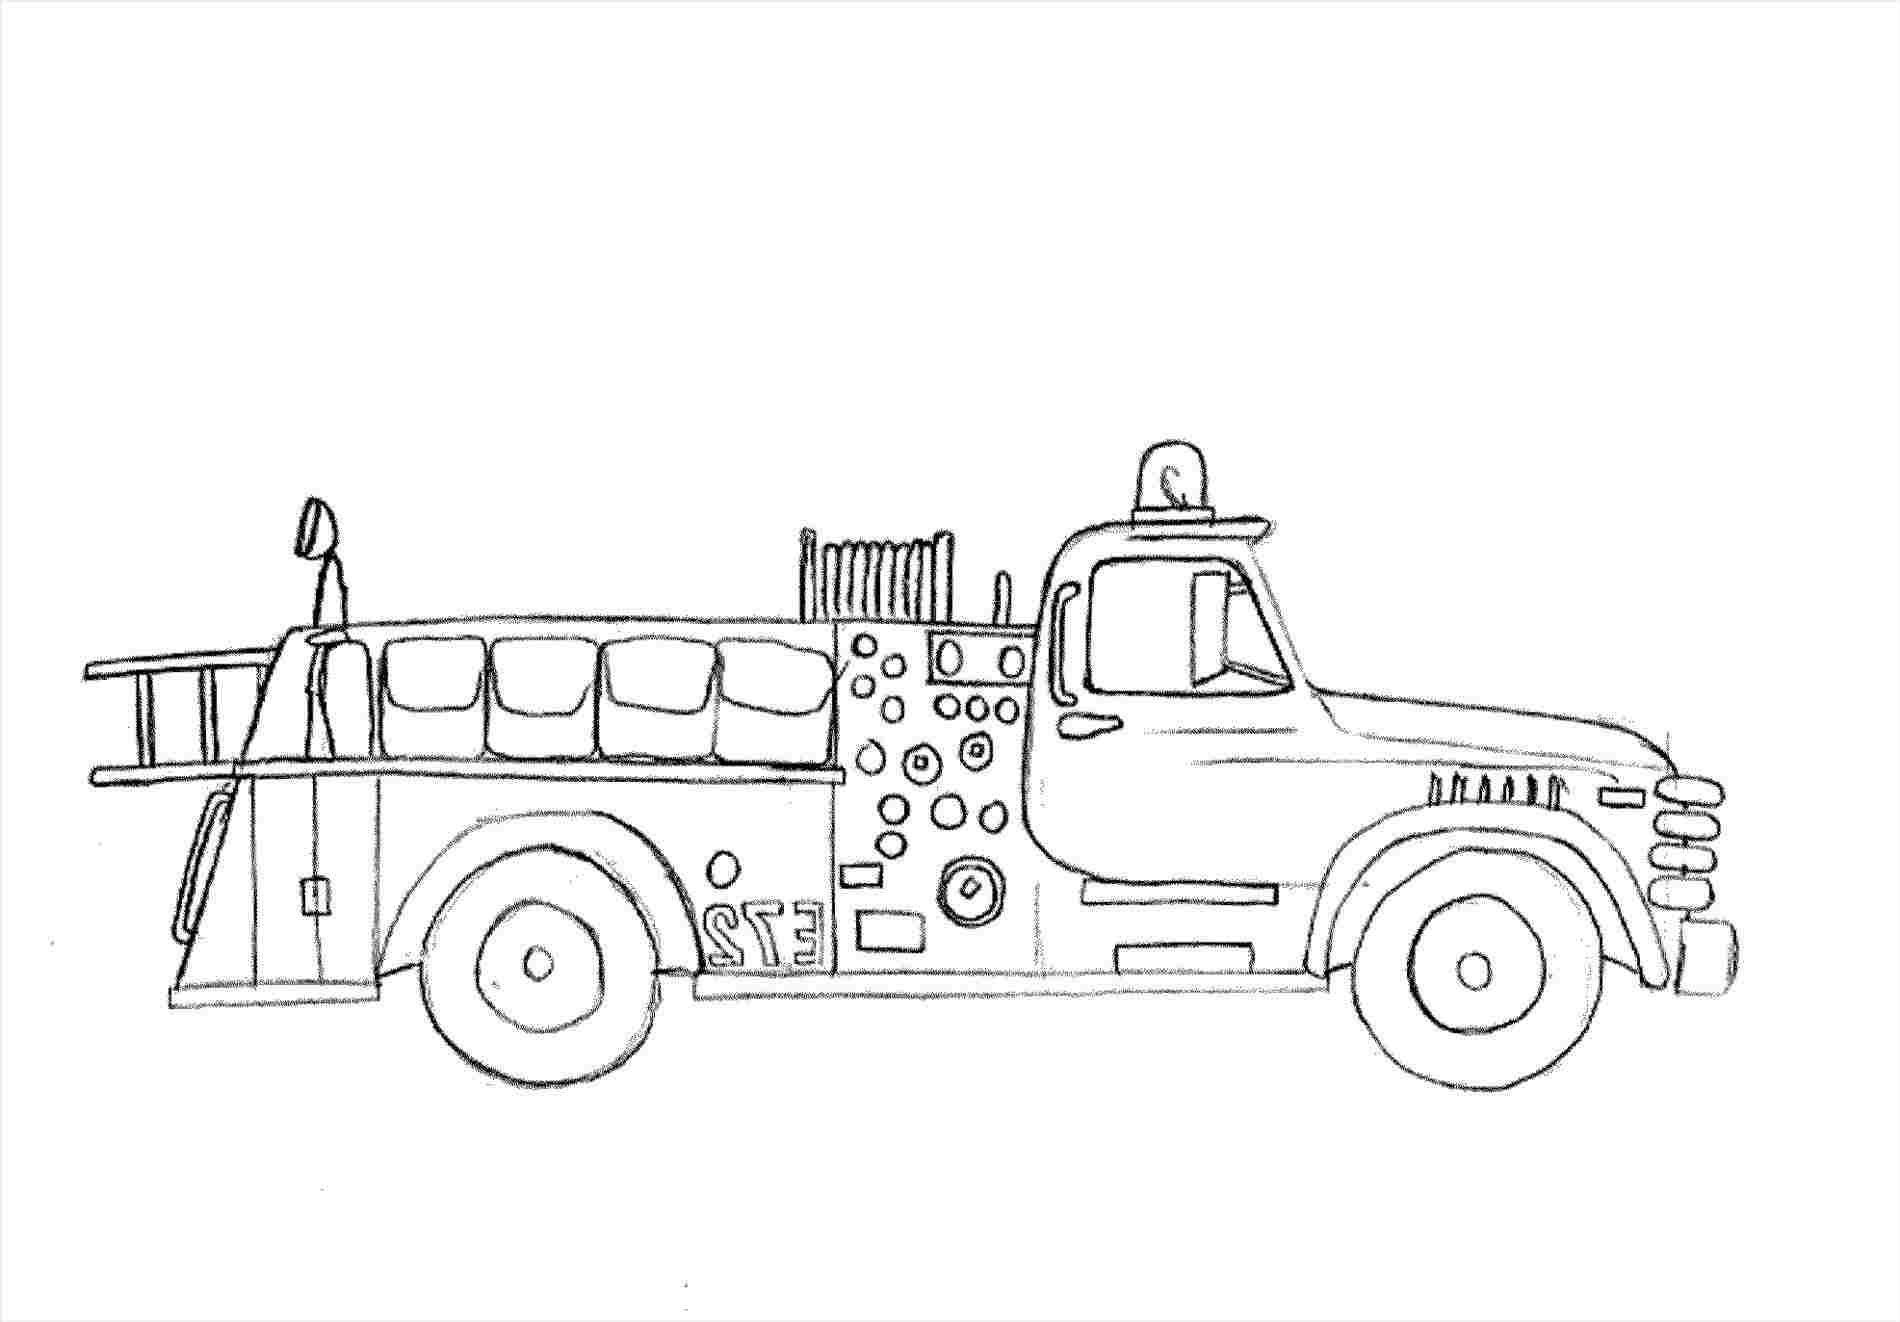 how to draw fire truck fire truck drawing pictures at paintingvalleycom how truck draw to fire